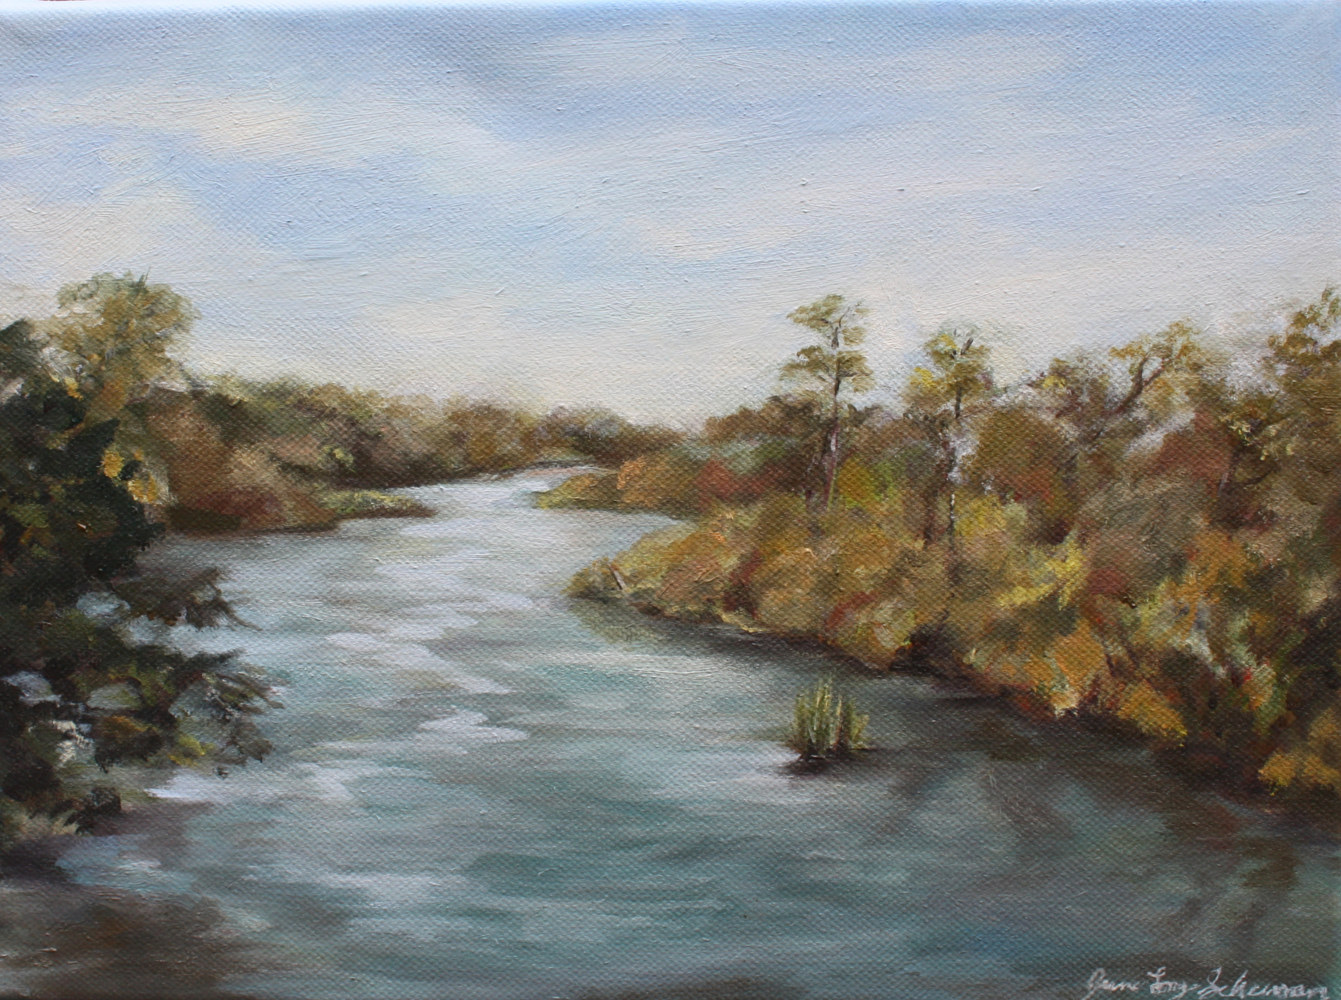 Oil painting Carmen's River by June Long-schuman